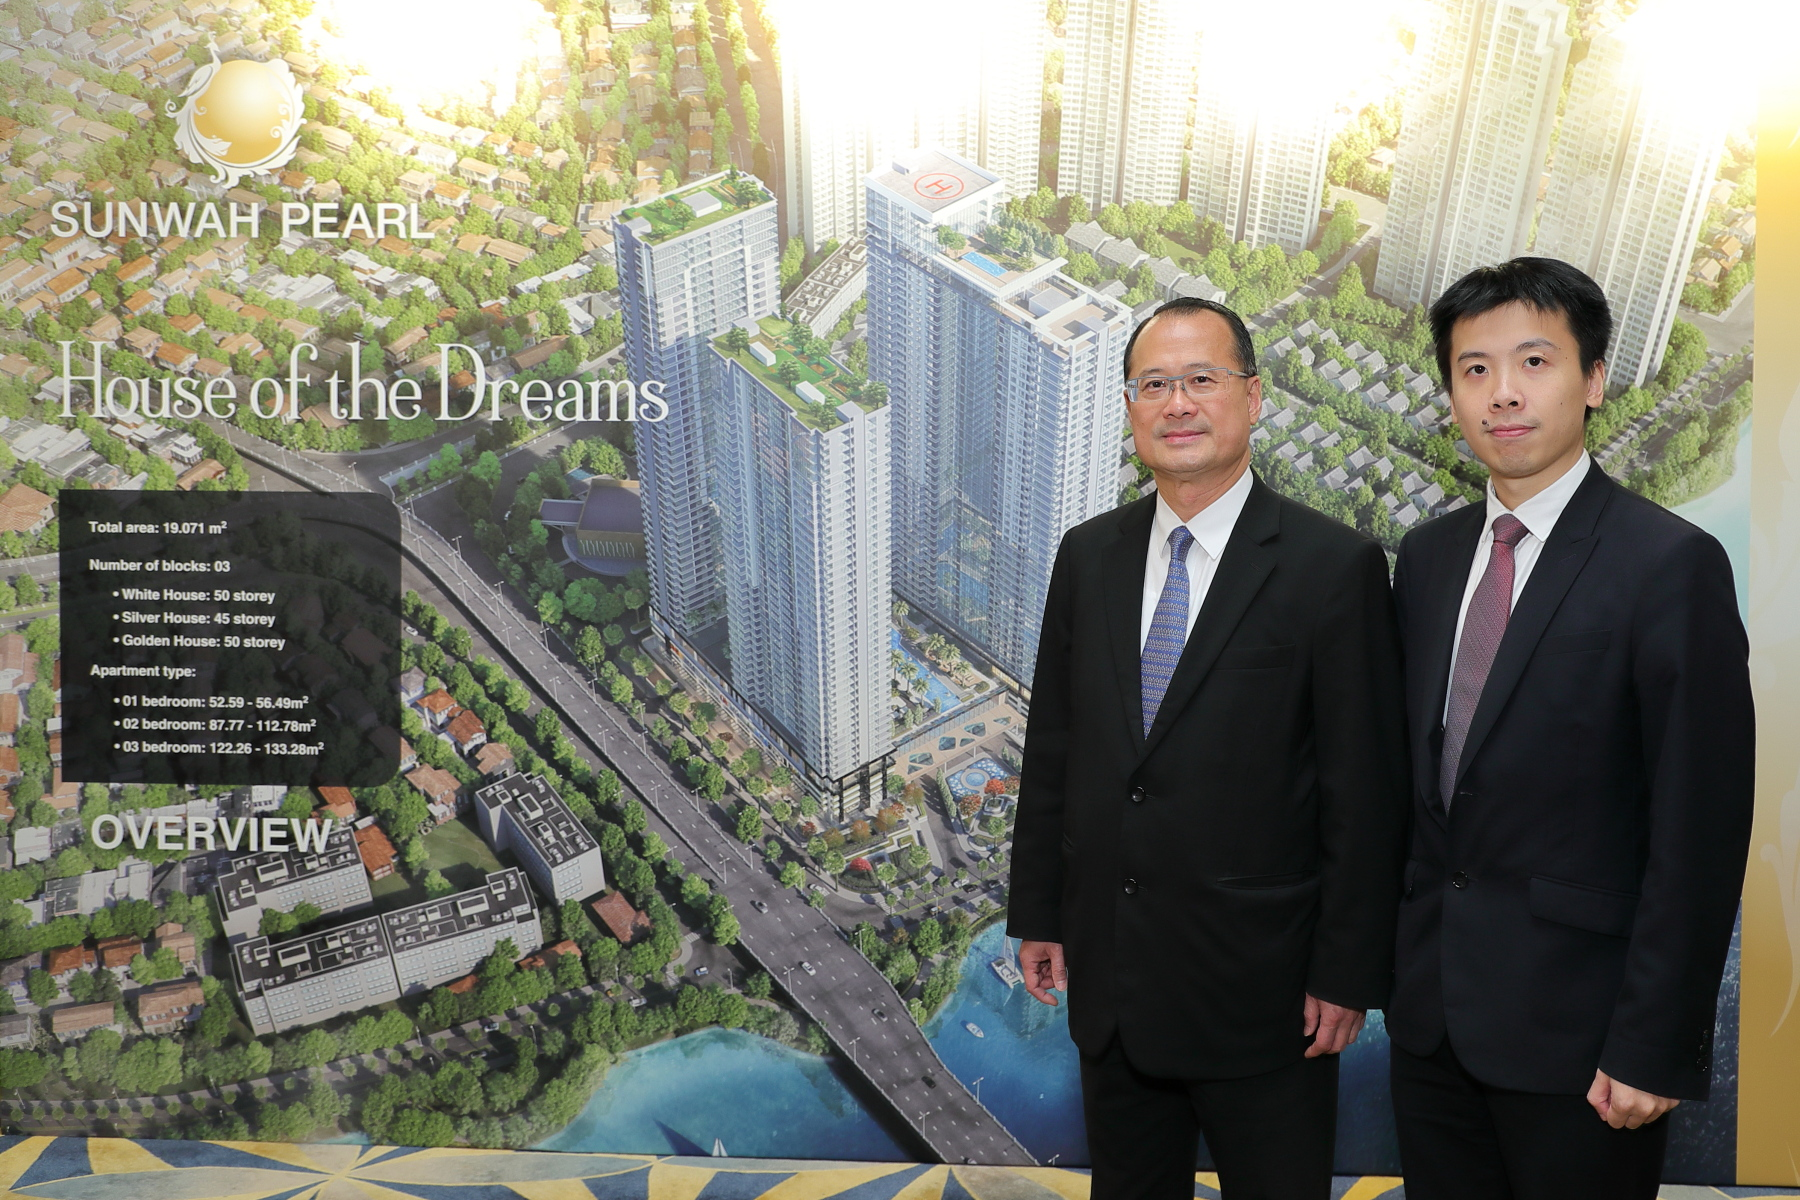 Dr Jonathan Choi (left) & Mr Johnson Choi (right) officiated the Sunwah Pearl Project Launch in Hong Kong